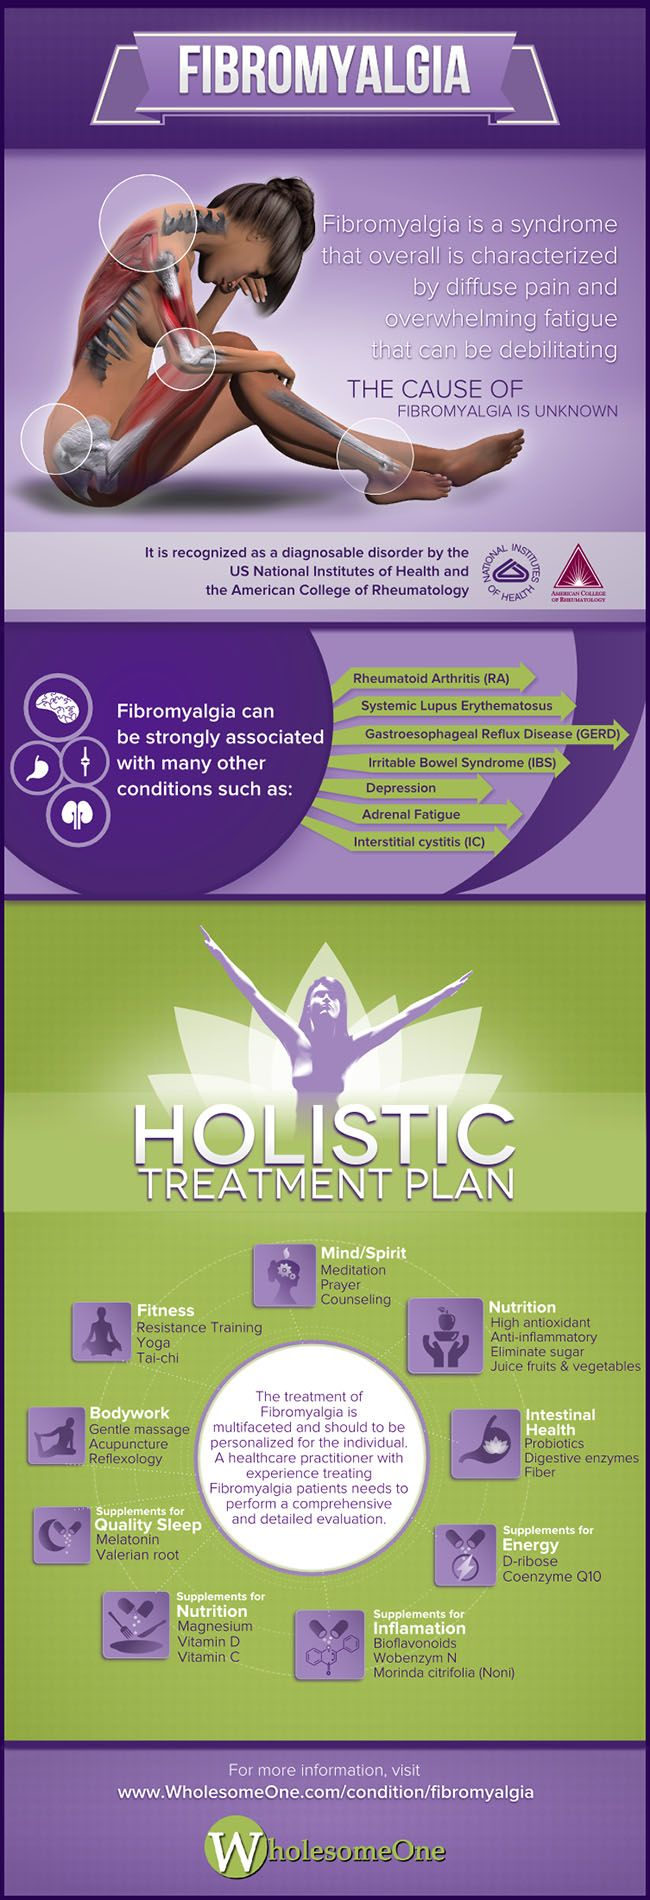 Fibromyalgia #Infographic #Health #Fibromyalgia | Holistic treatment plan